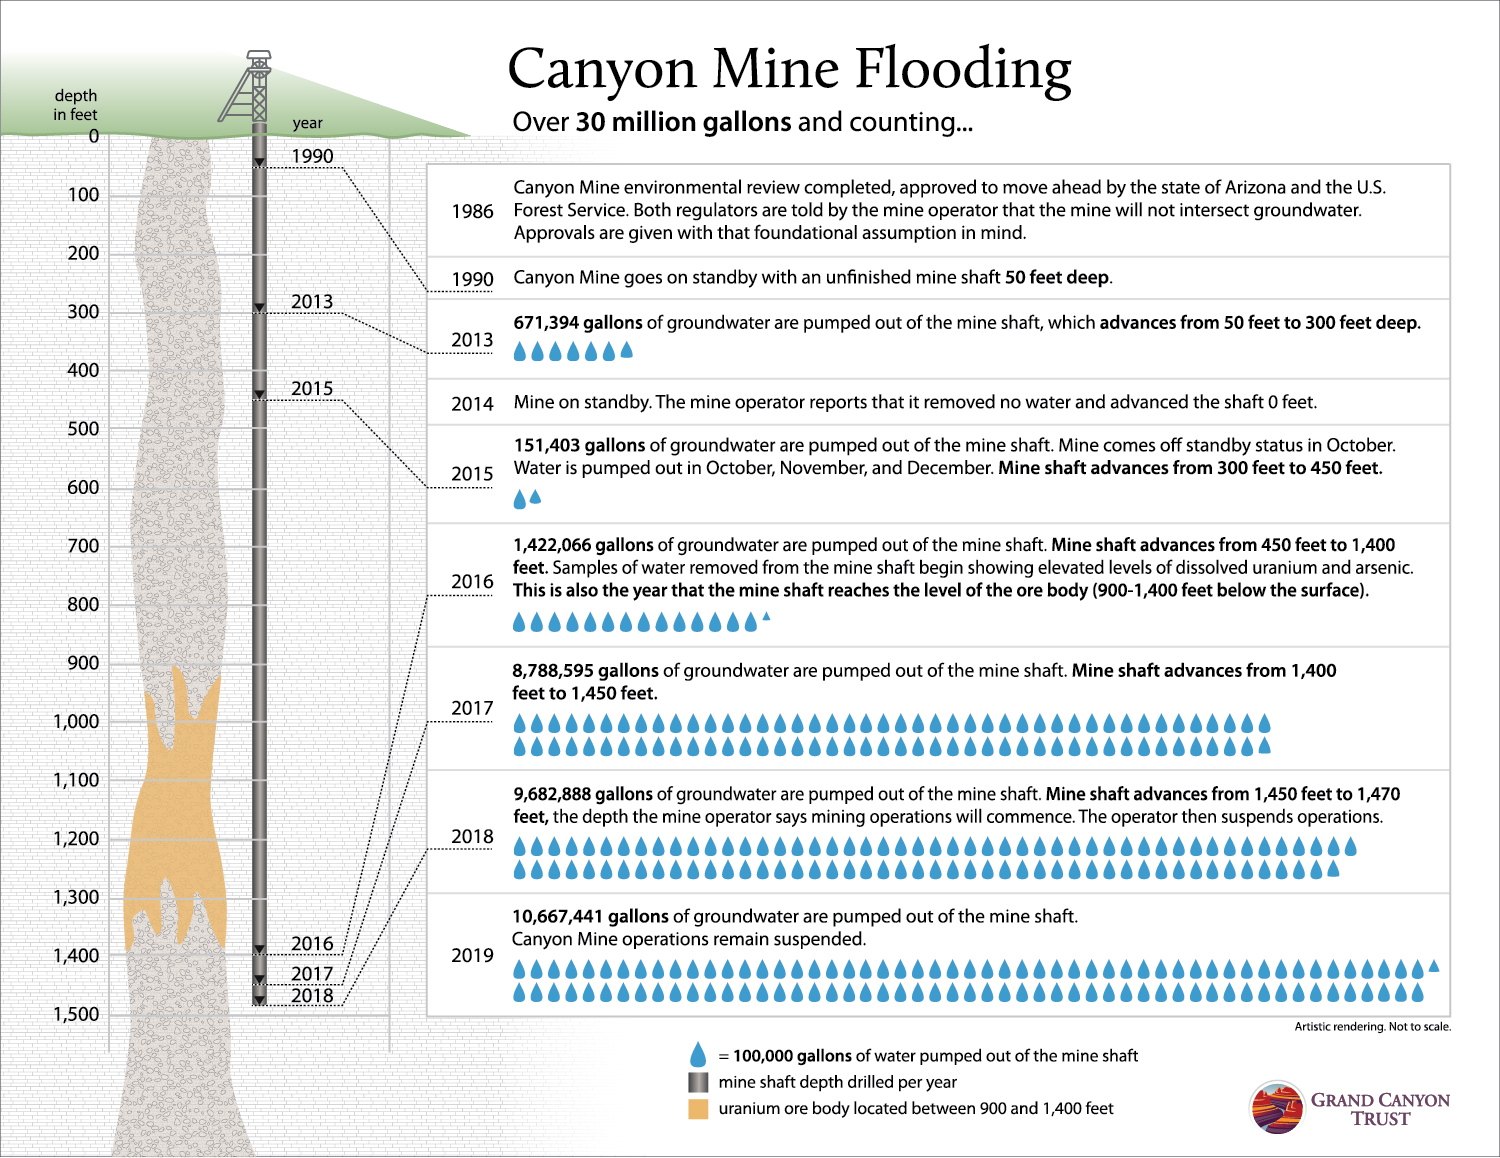 Graphic of flooding at Canyon Mine